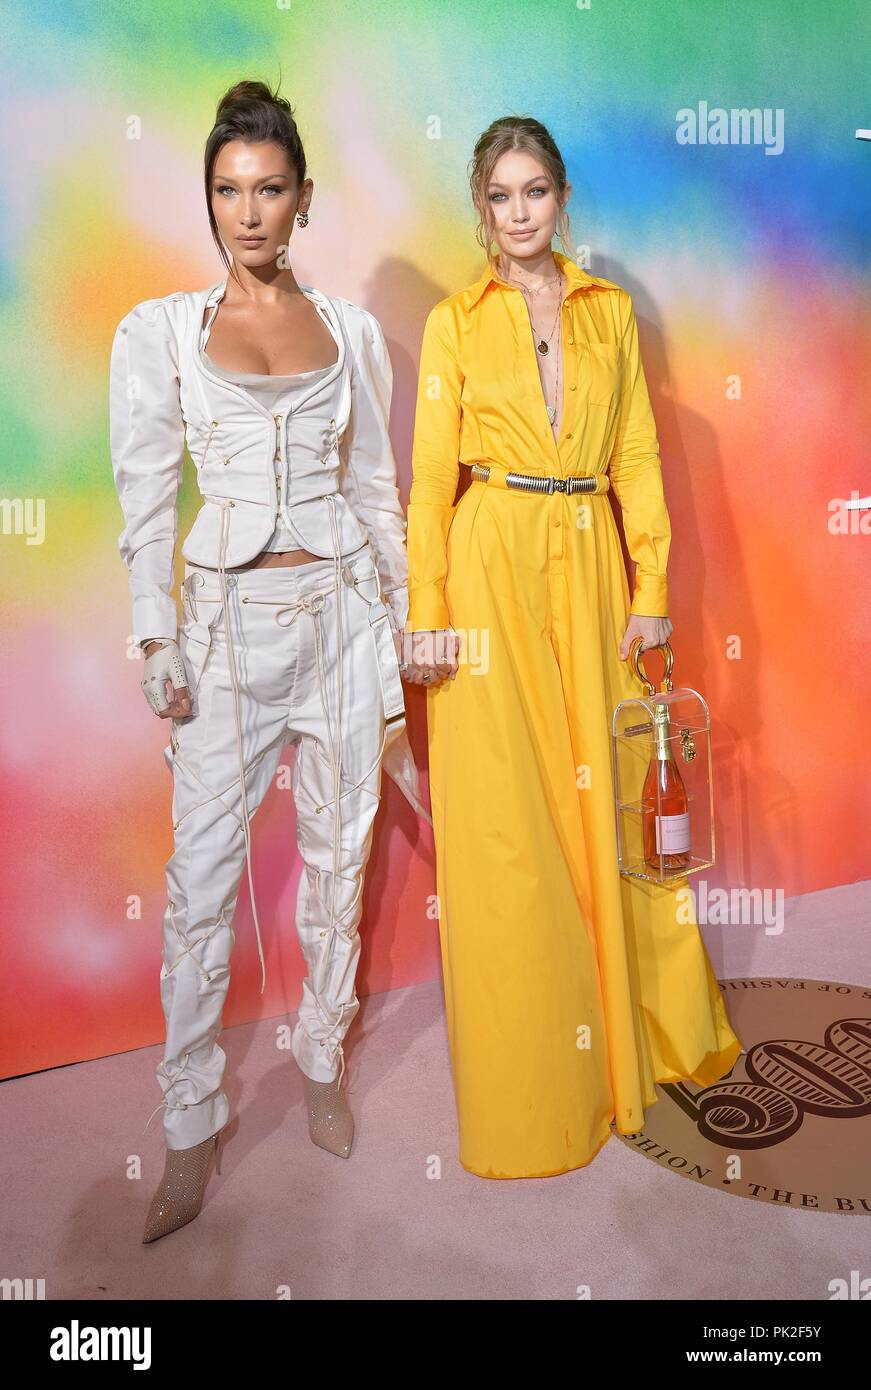 Gigi hadid and bella hadid at business of fashion celebrates the bof500 2019 new images